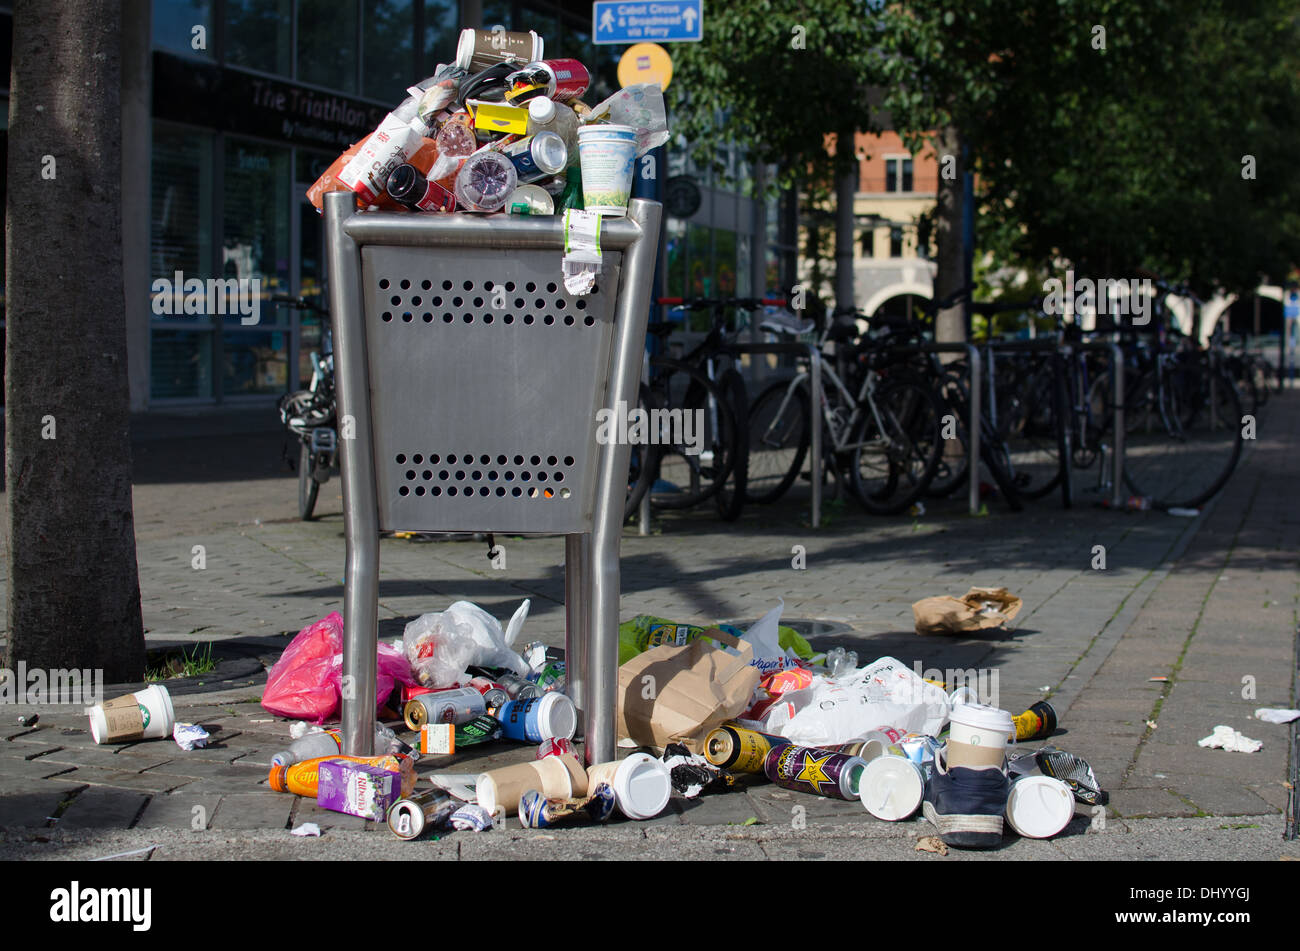 Rubbish bin over flowing with rubbish Stock Photo